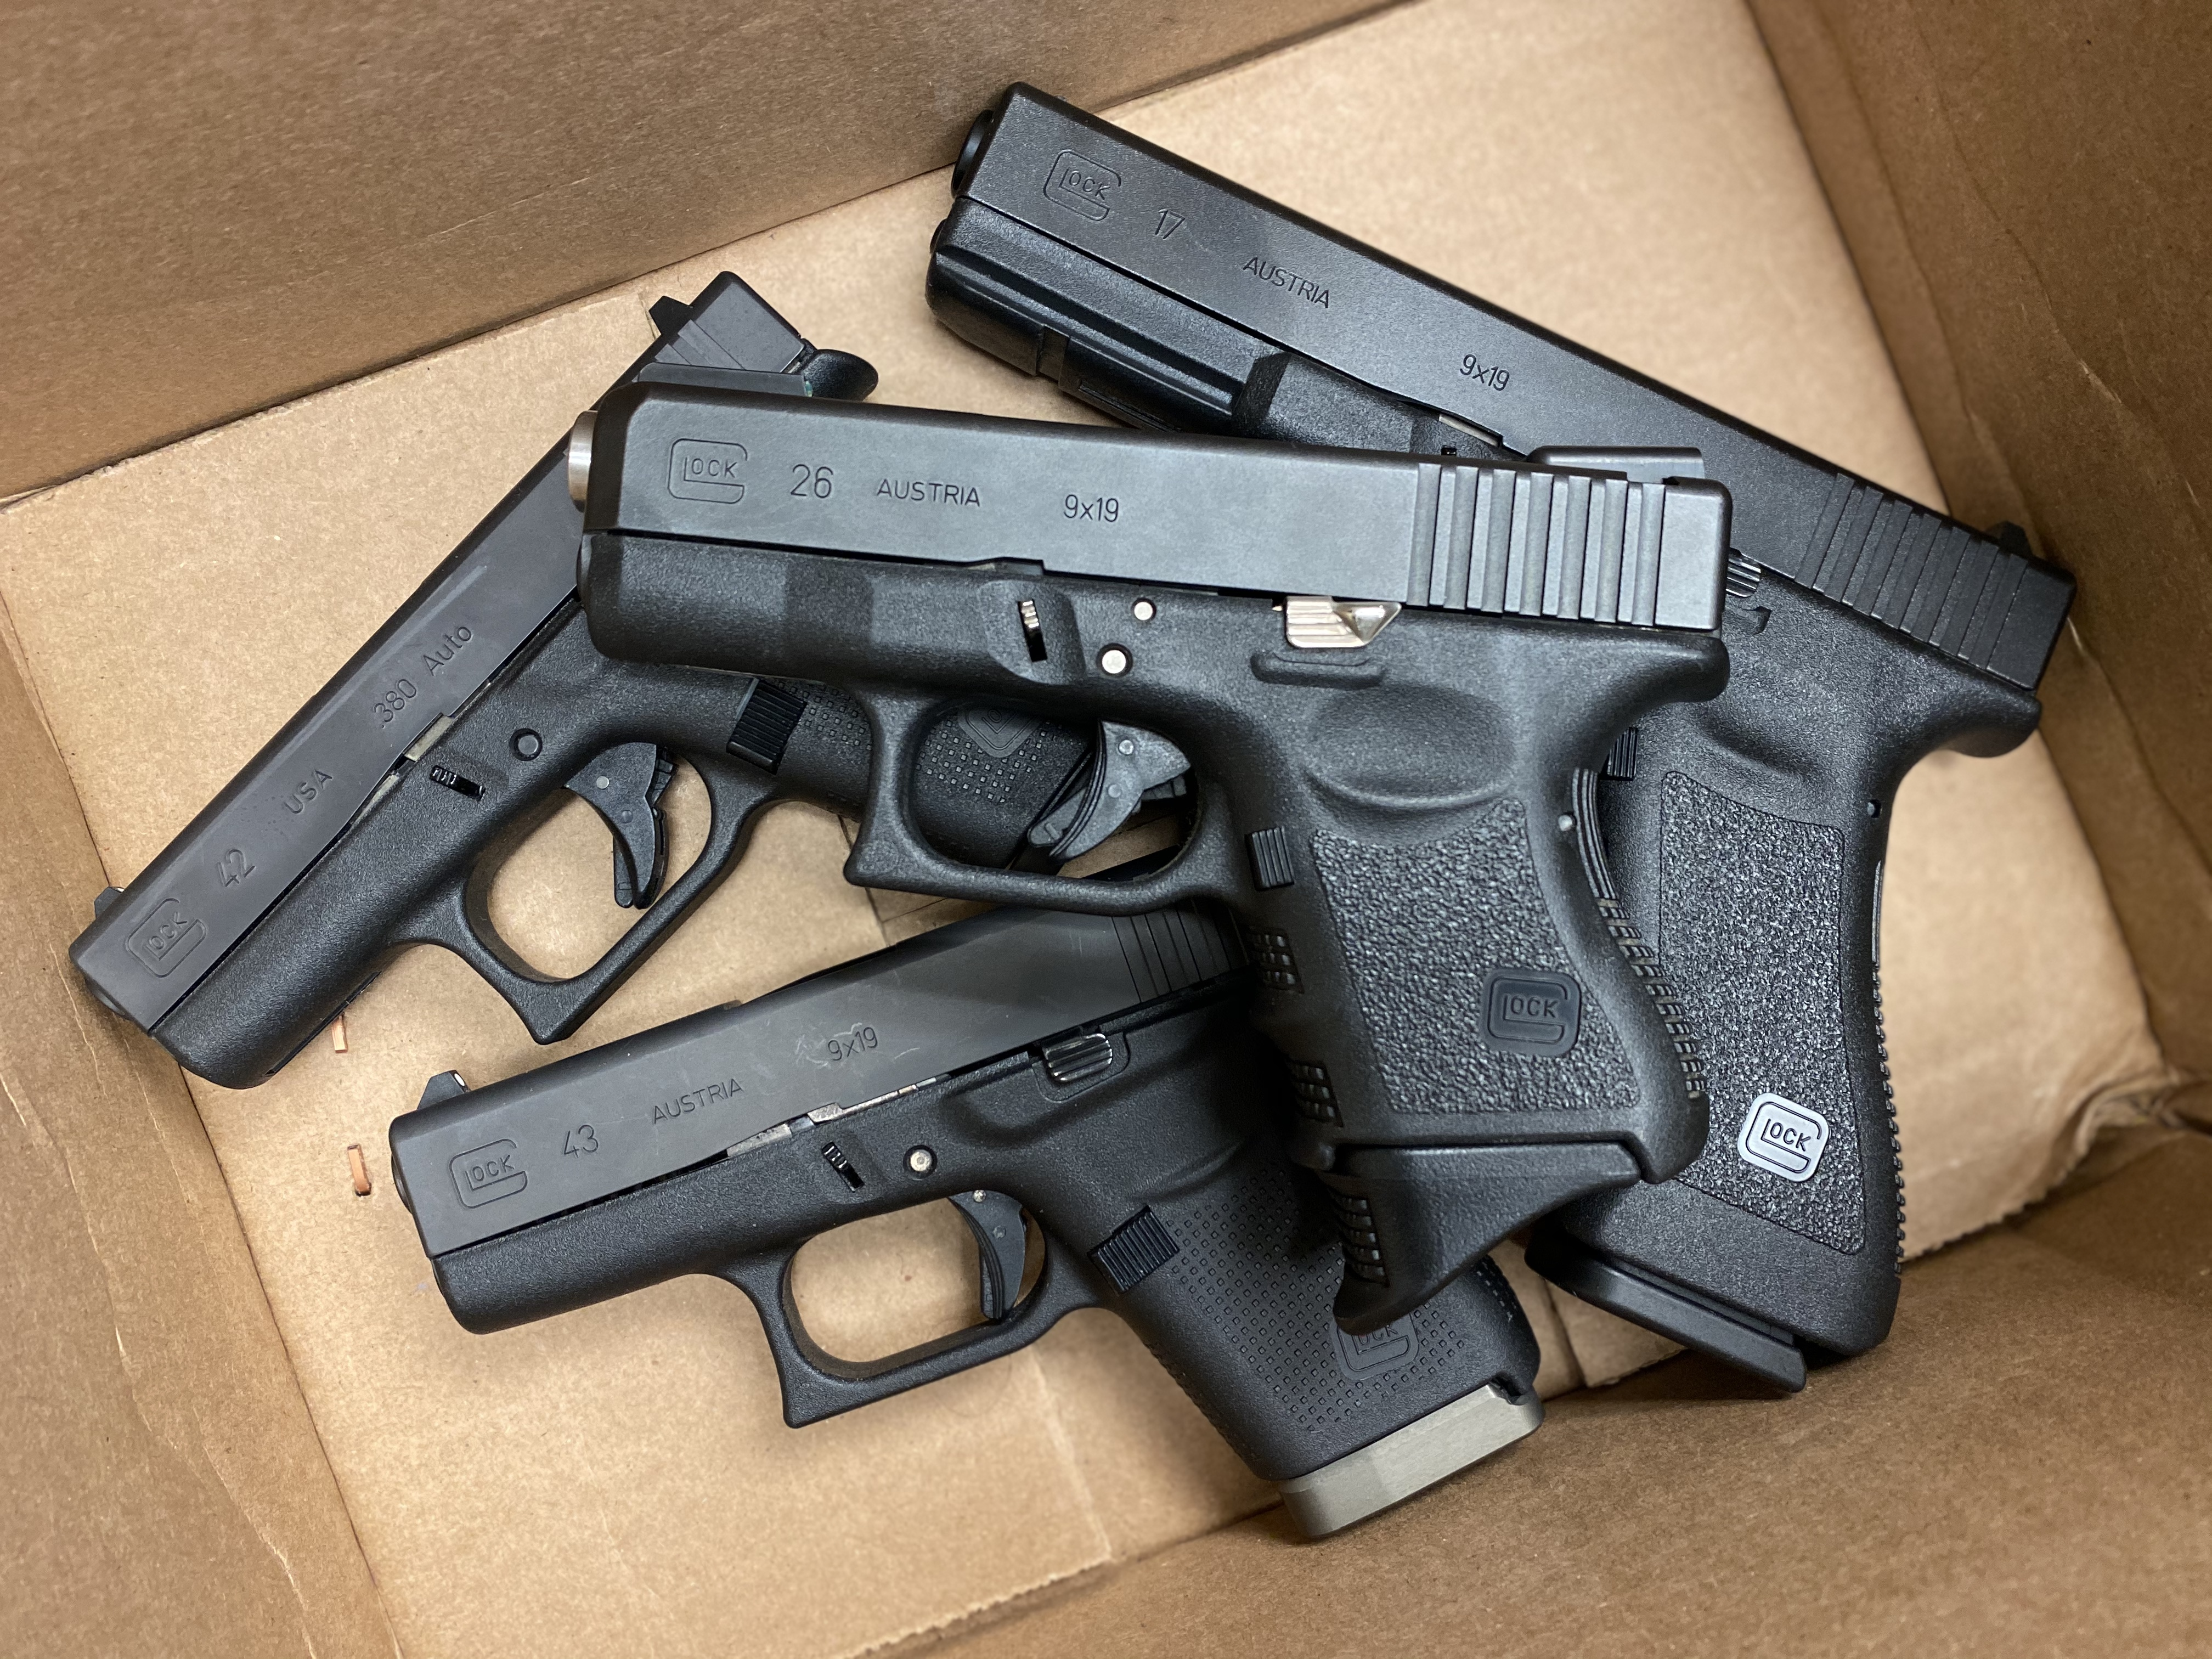 G26, G43, G42, Glock, Pistols, G17, Gen 1, CrossBreed Holsters, IWB, OWB, concealed carry, everyday carry, Glock guns, handgun, self-defense, ccw, ccp, guide to glock, glocks, box of glocks